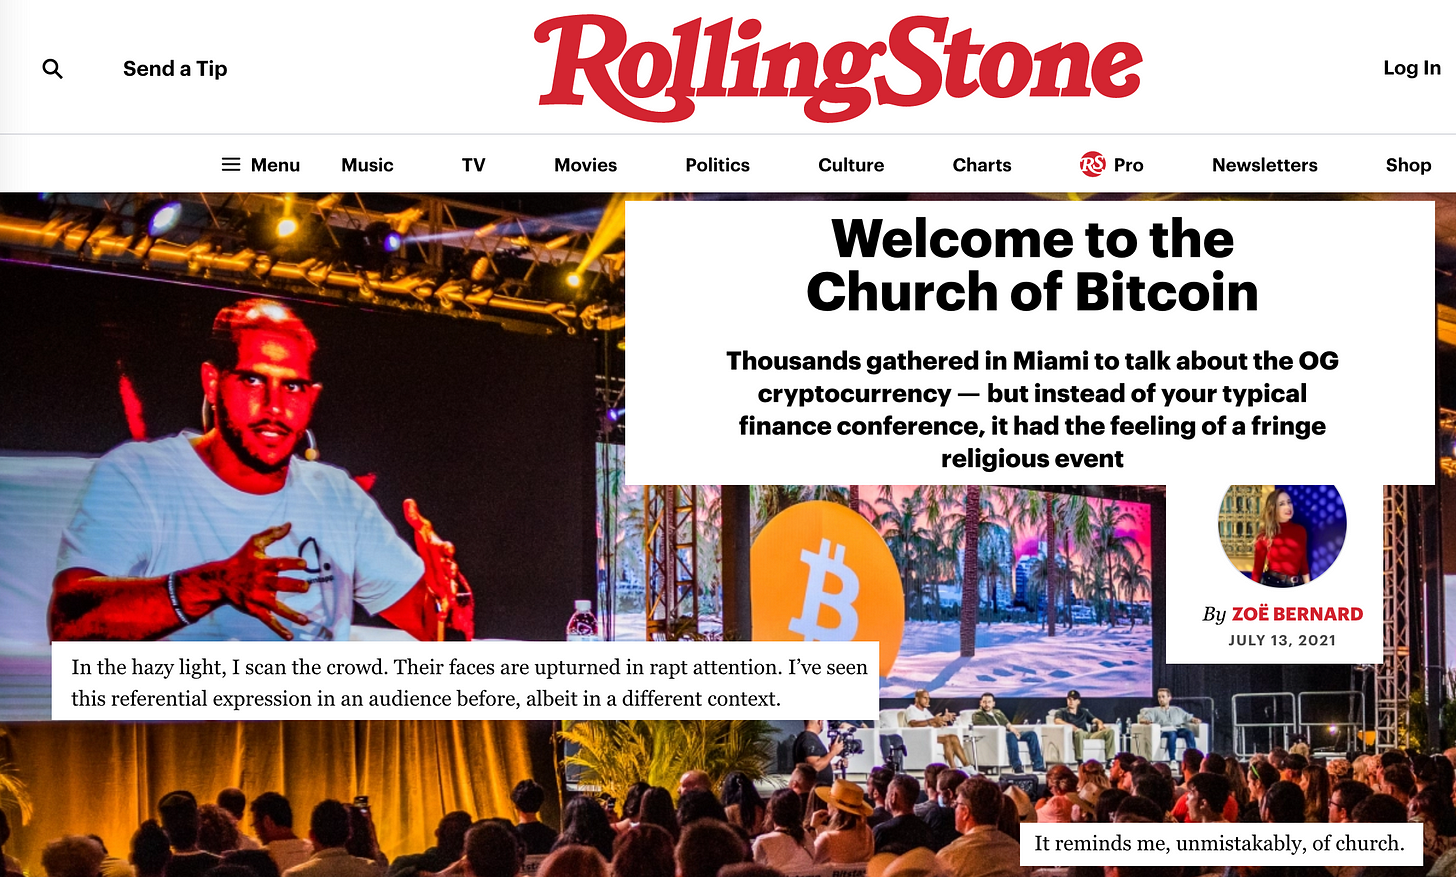 """Collage from Zoë Bernard's Rolling Stone feature """"Welcome to the Church of Bitcoin"""" including a picture of the crowd looking at a huge screen and stage, and the lines: """"In the hazy light, I scan the crowd. Their faces are upturned in rapt attention. I've seen this referential expression in an audience before, albeit in a different context. It reminds me, unmistakably, of church."""""""